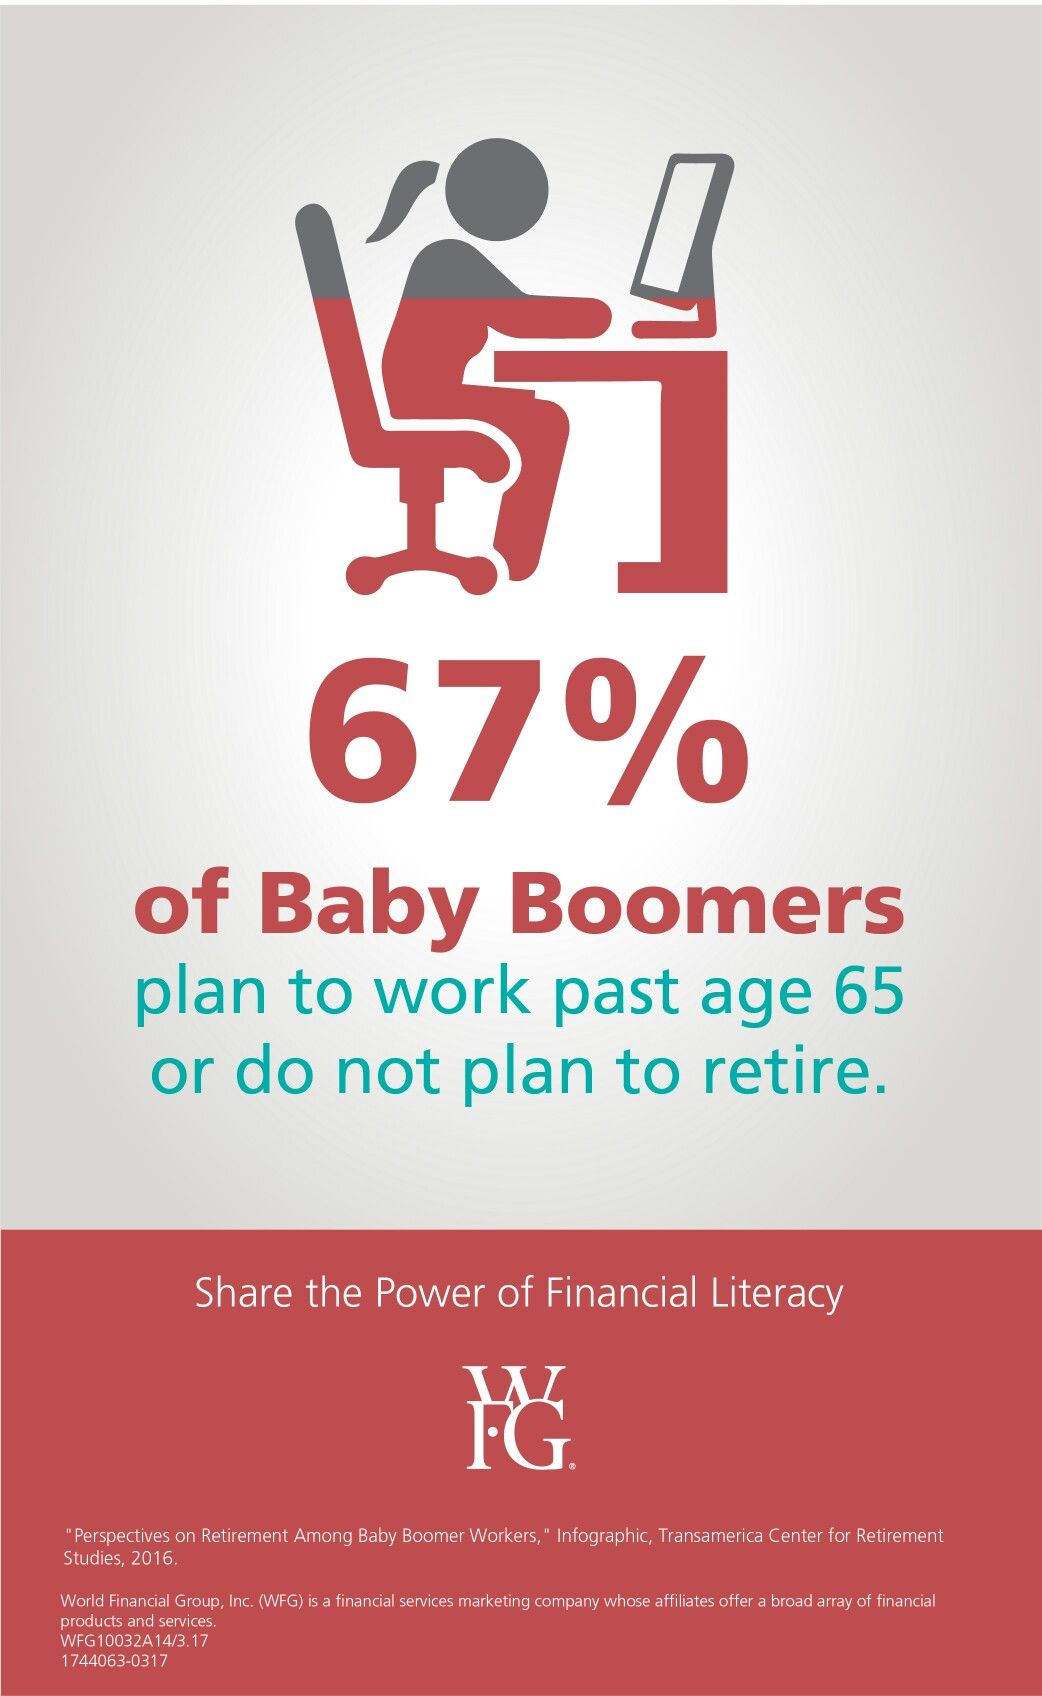 Pin By Madeleine V On Finance Financial Literacy Life Insurance